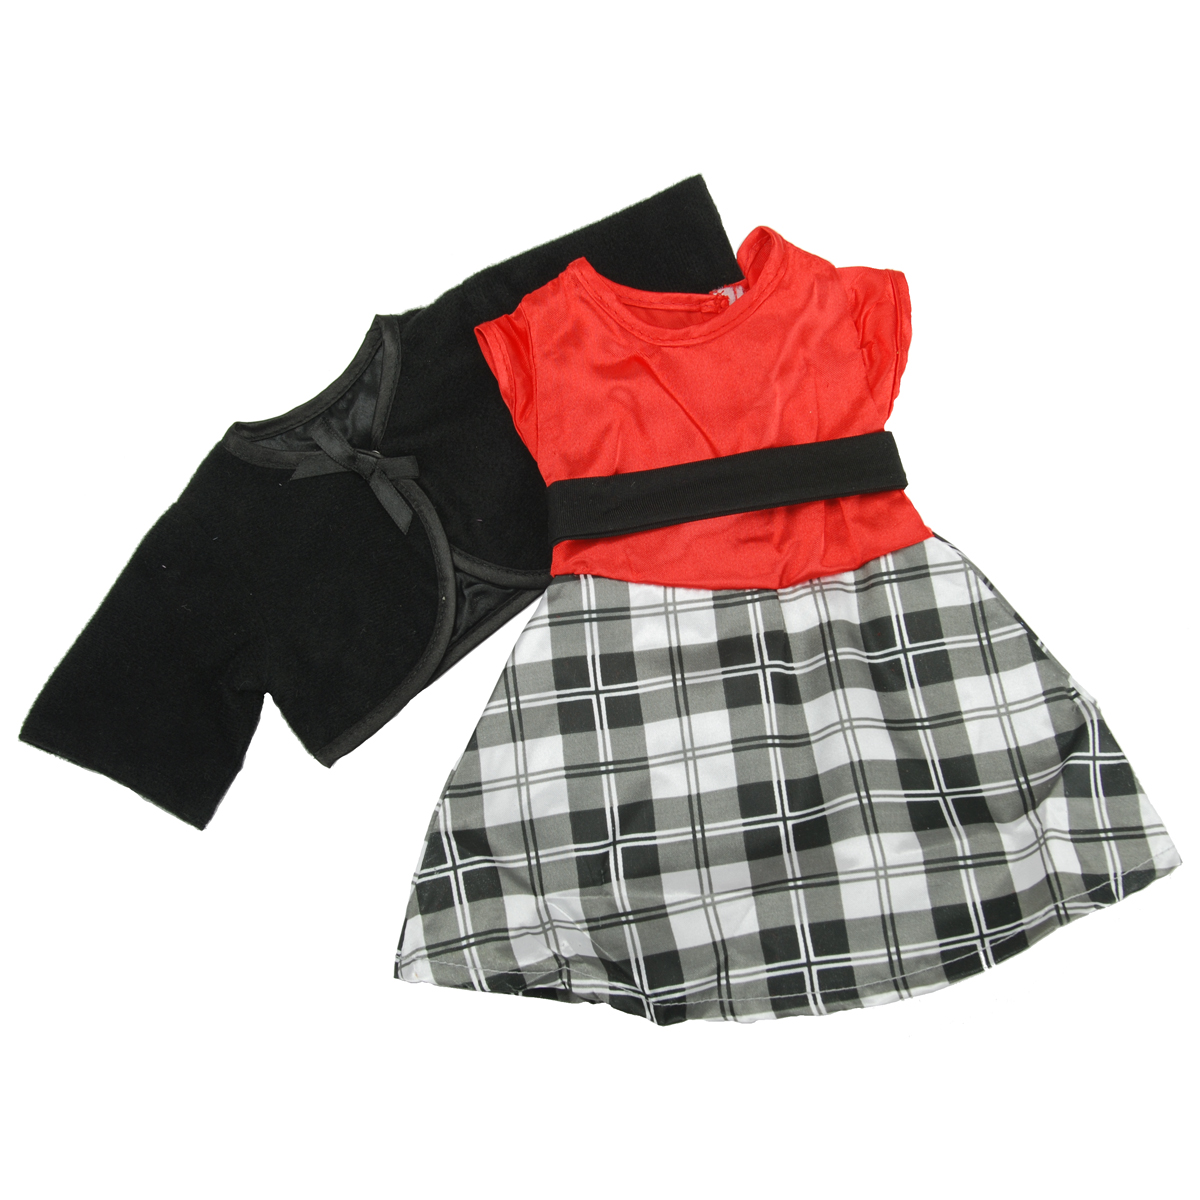 Springfield Boutique Dressy Outfit-Plaid Skirt, Red Shirt and Black Jacket